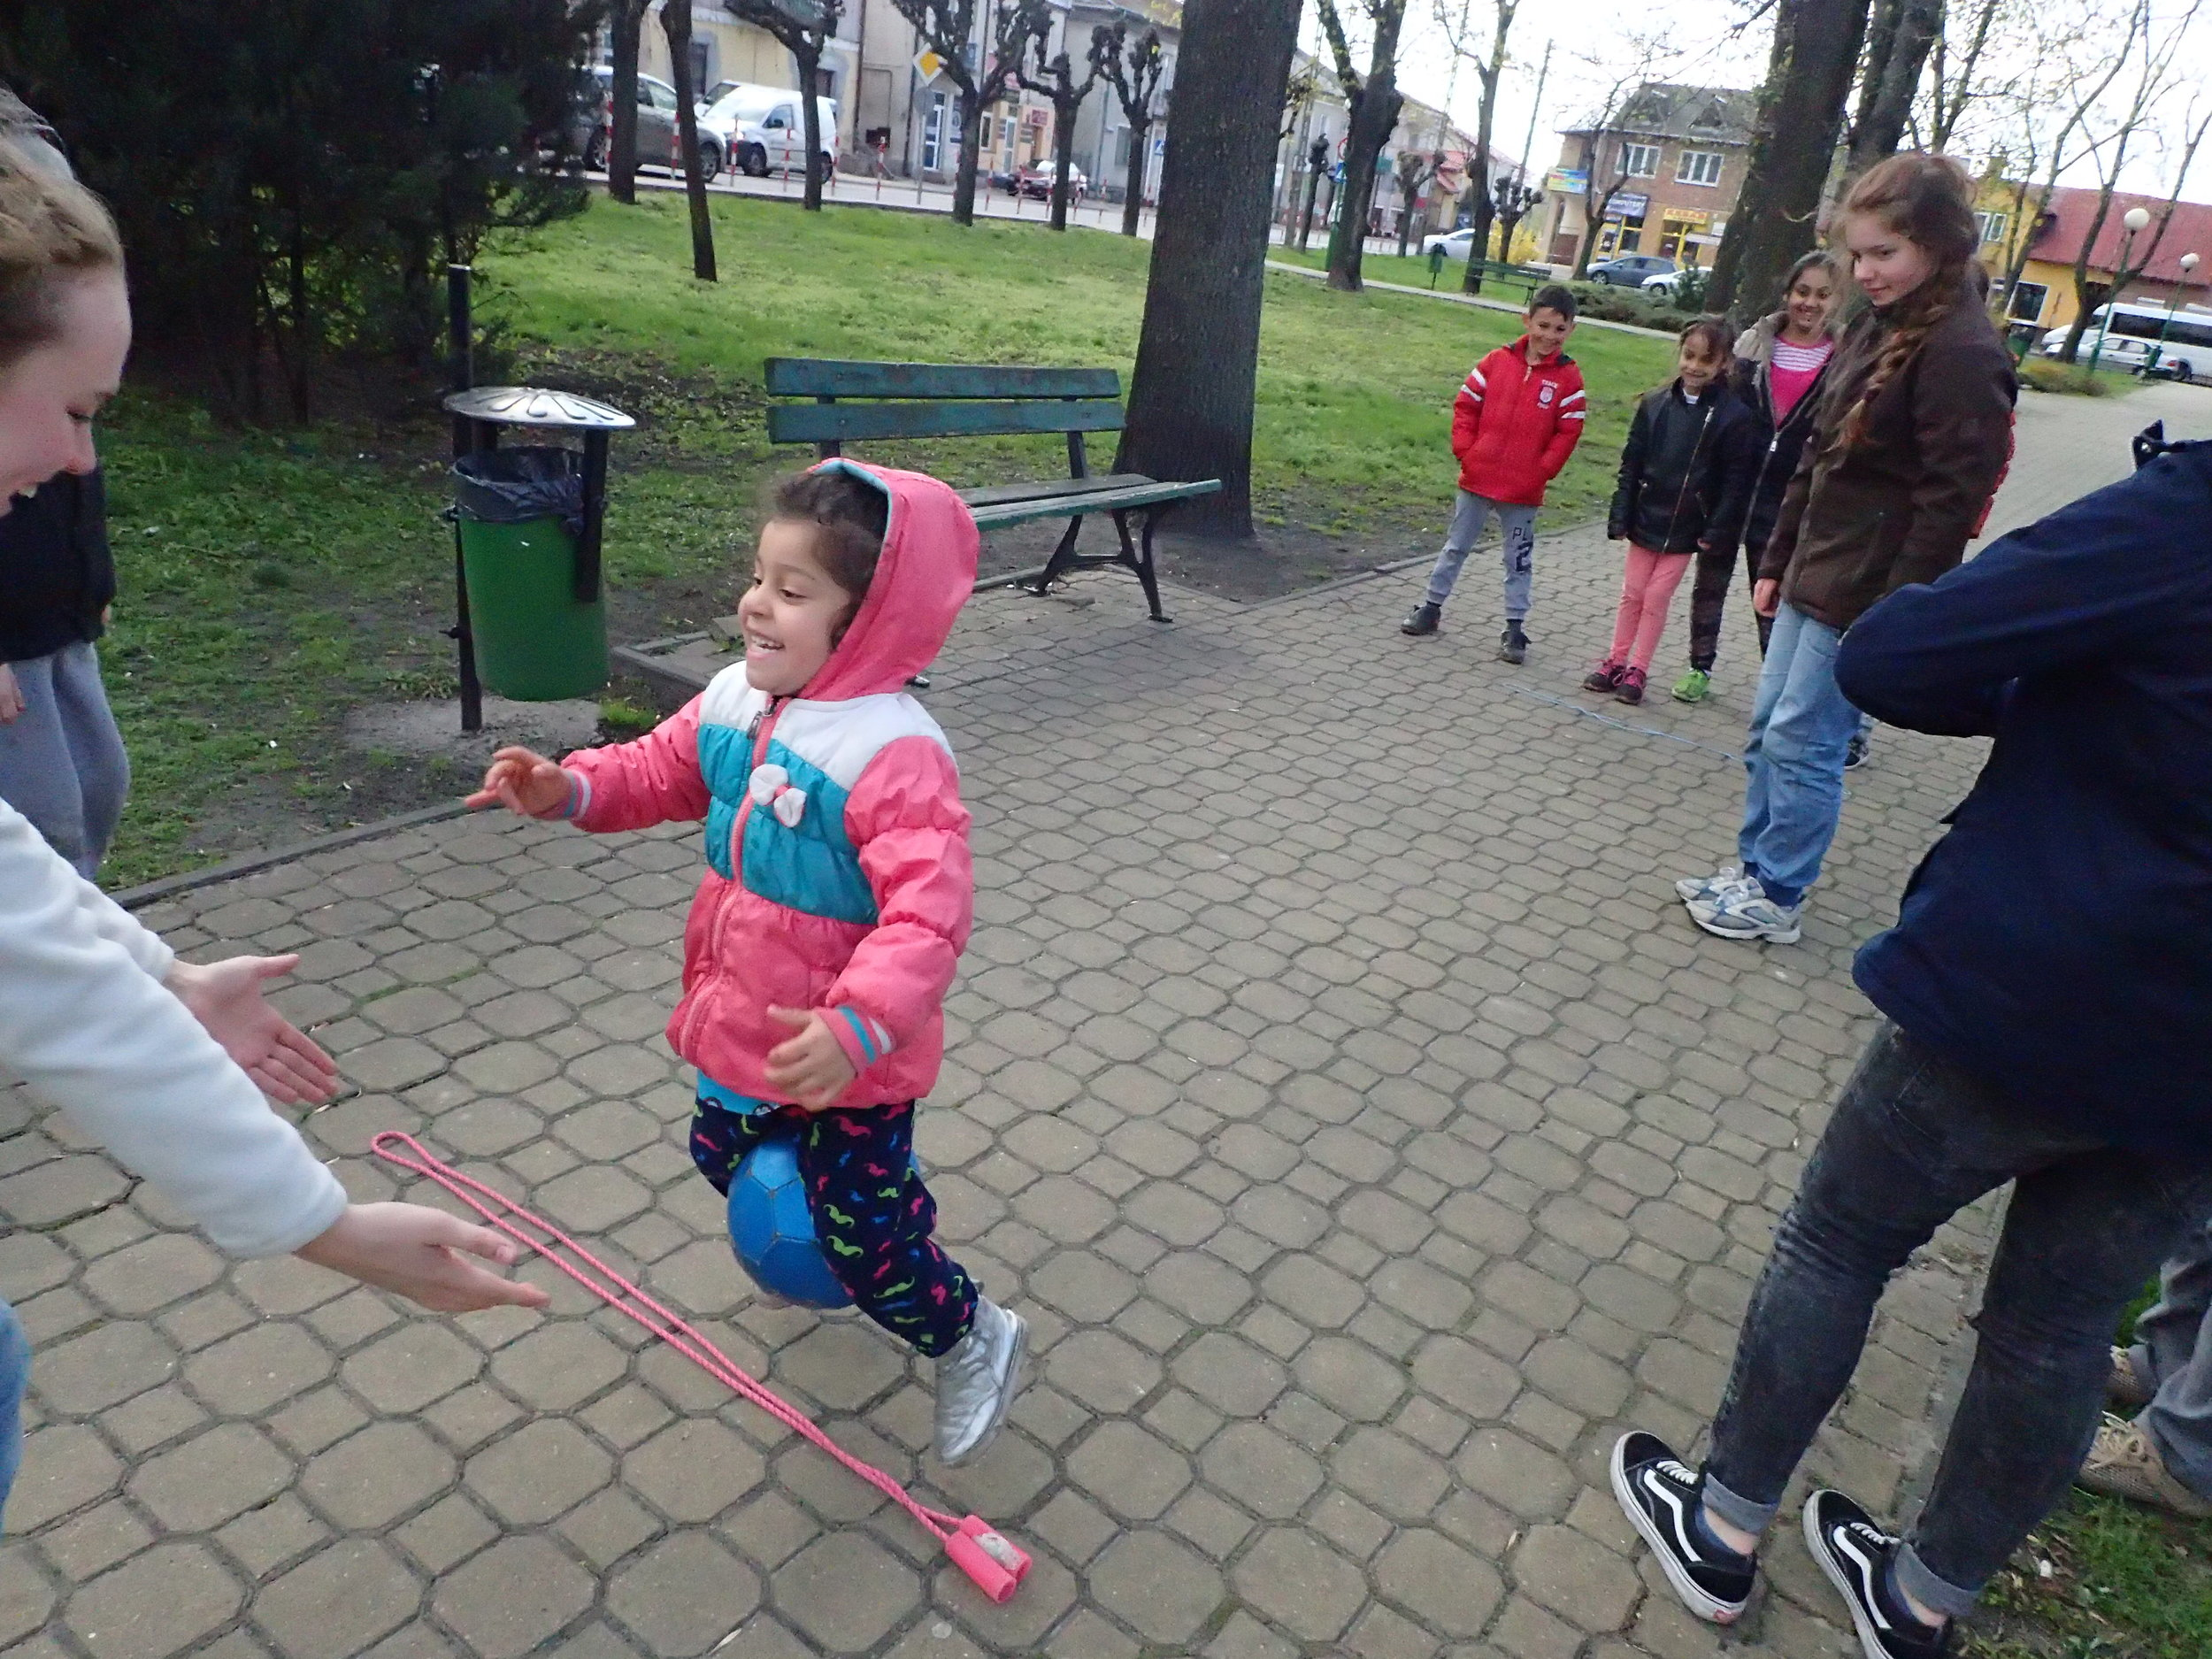 One of our fun games in the park!